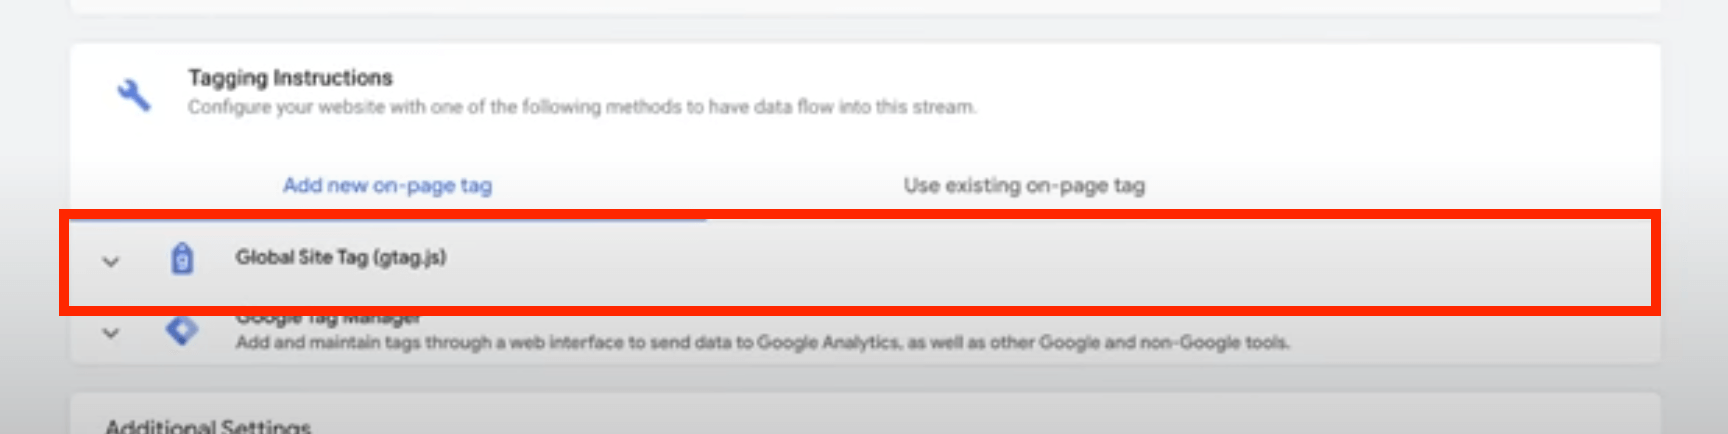 Screenshot of Global site tag for Google Analytics 4.0